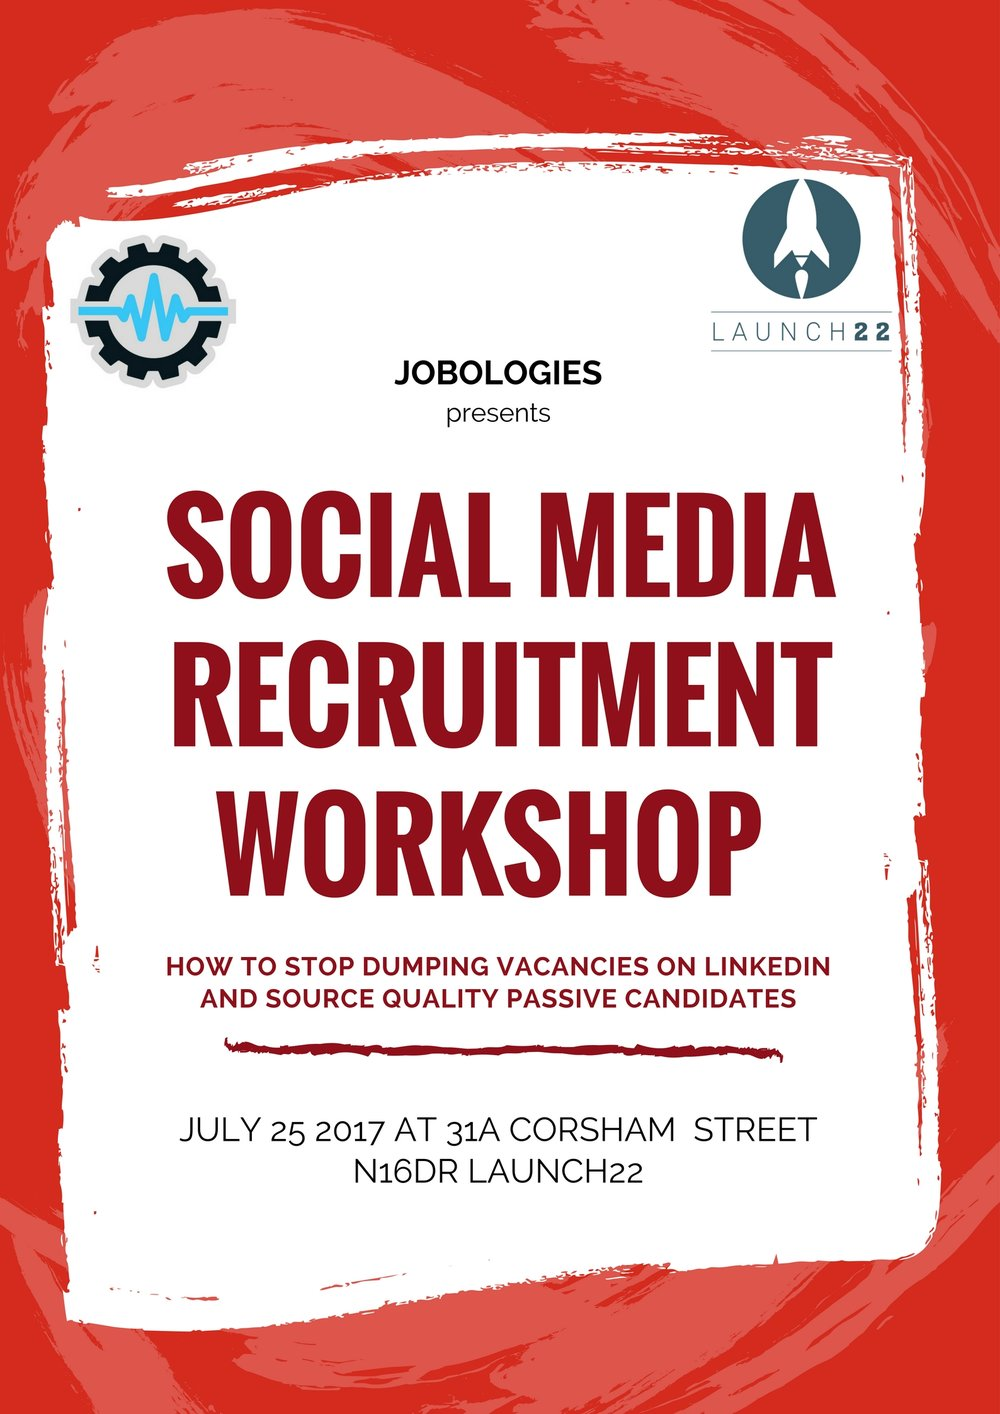 Social Media Recruitment Workshop - Did you know?Most recruiters fail to develop a valuable, brand building, candidate generating social media presence. Instead they dump vacancies on LinkedIn and do not see any outcomes.CLICK HERE TO JOIN THE FREE WORKSHOP!